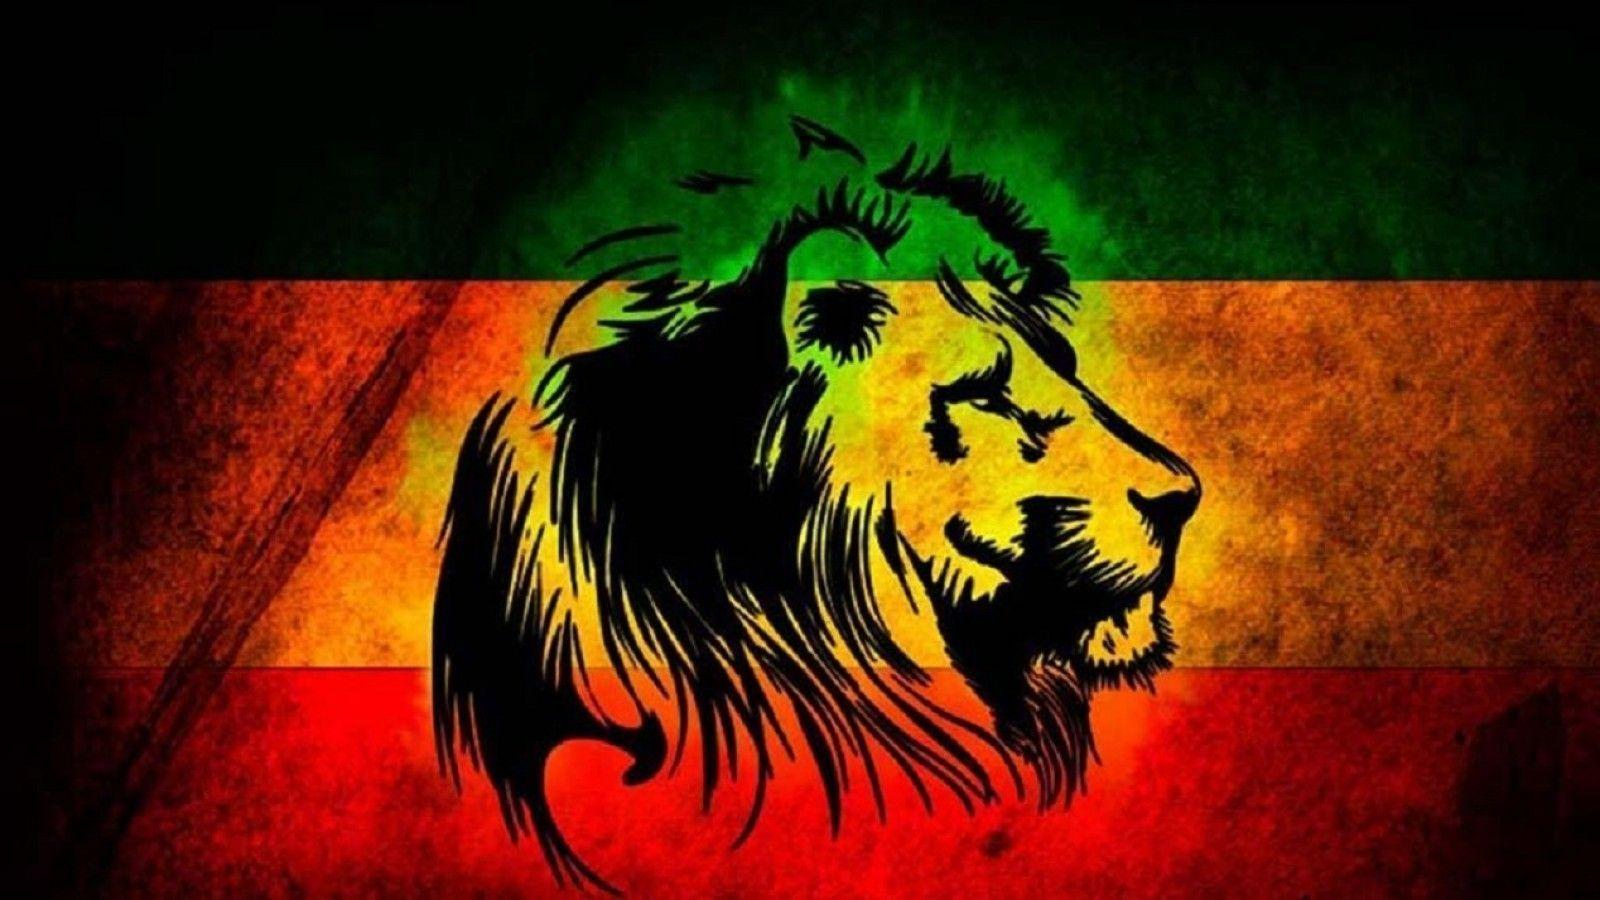 rasta colors backgrounds hd - photo #12